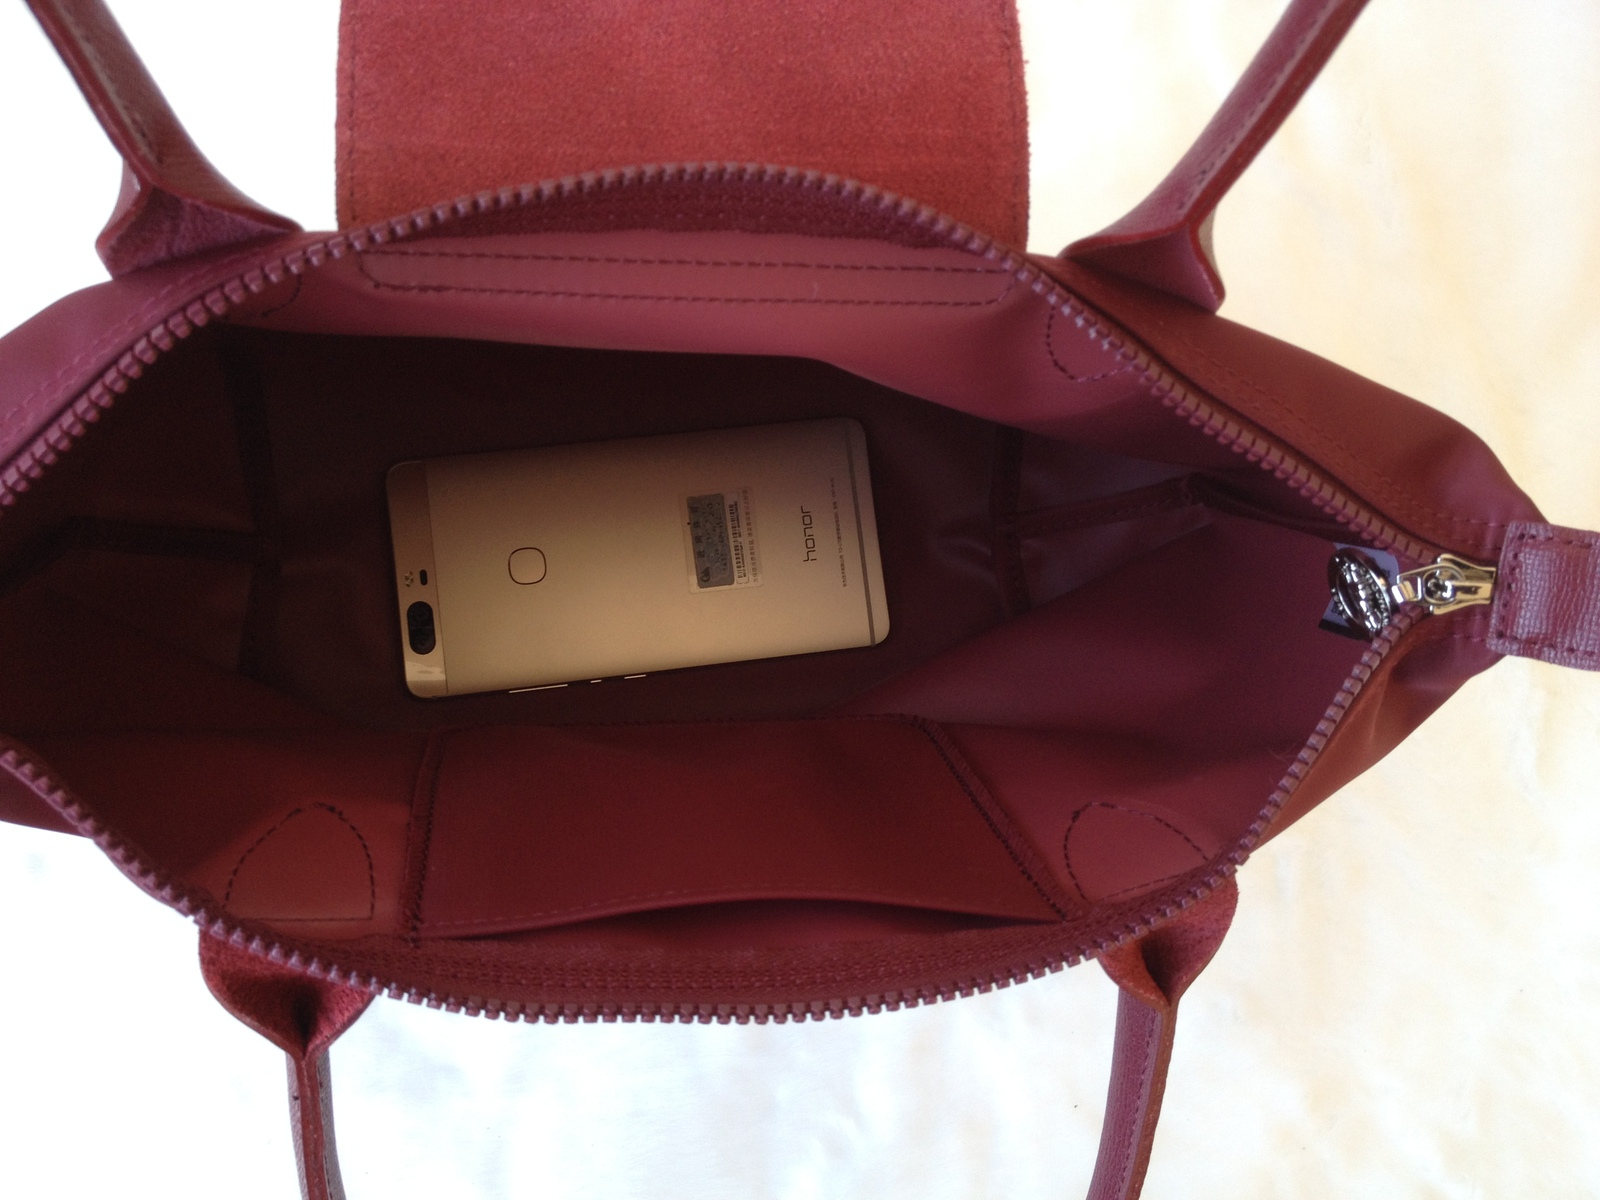 Longchamp Le Pliage Neo Small Tote Bag Wine And 28 Similar Items 2605578009 Authentic